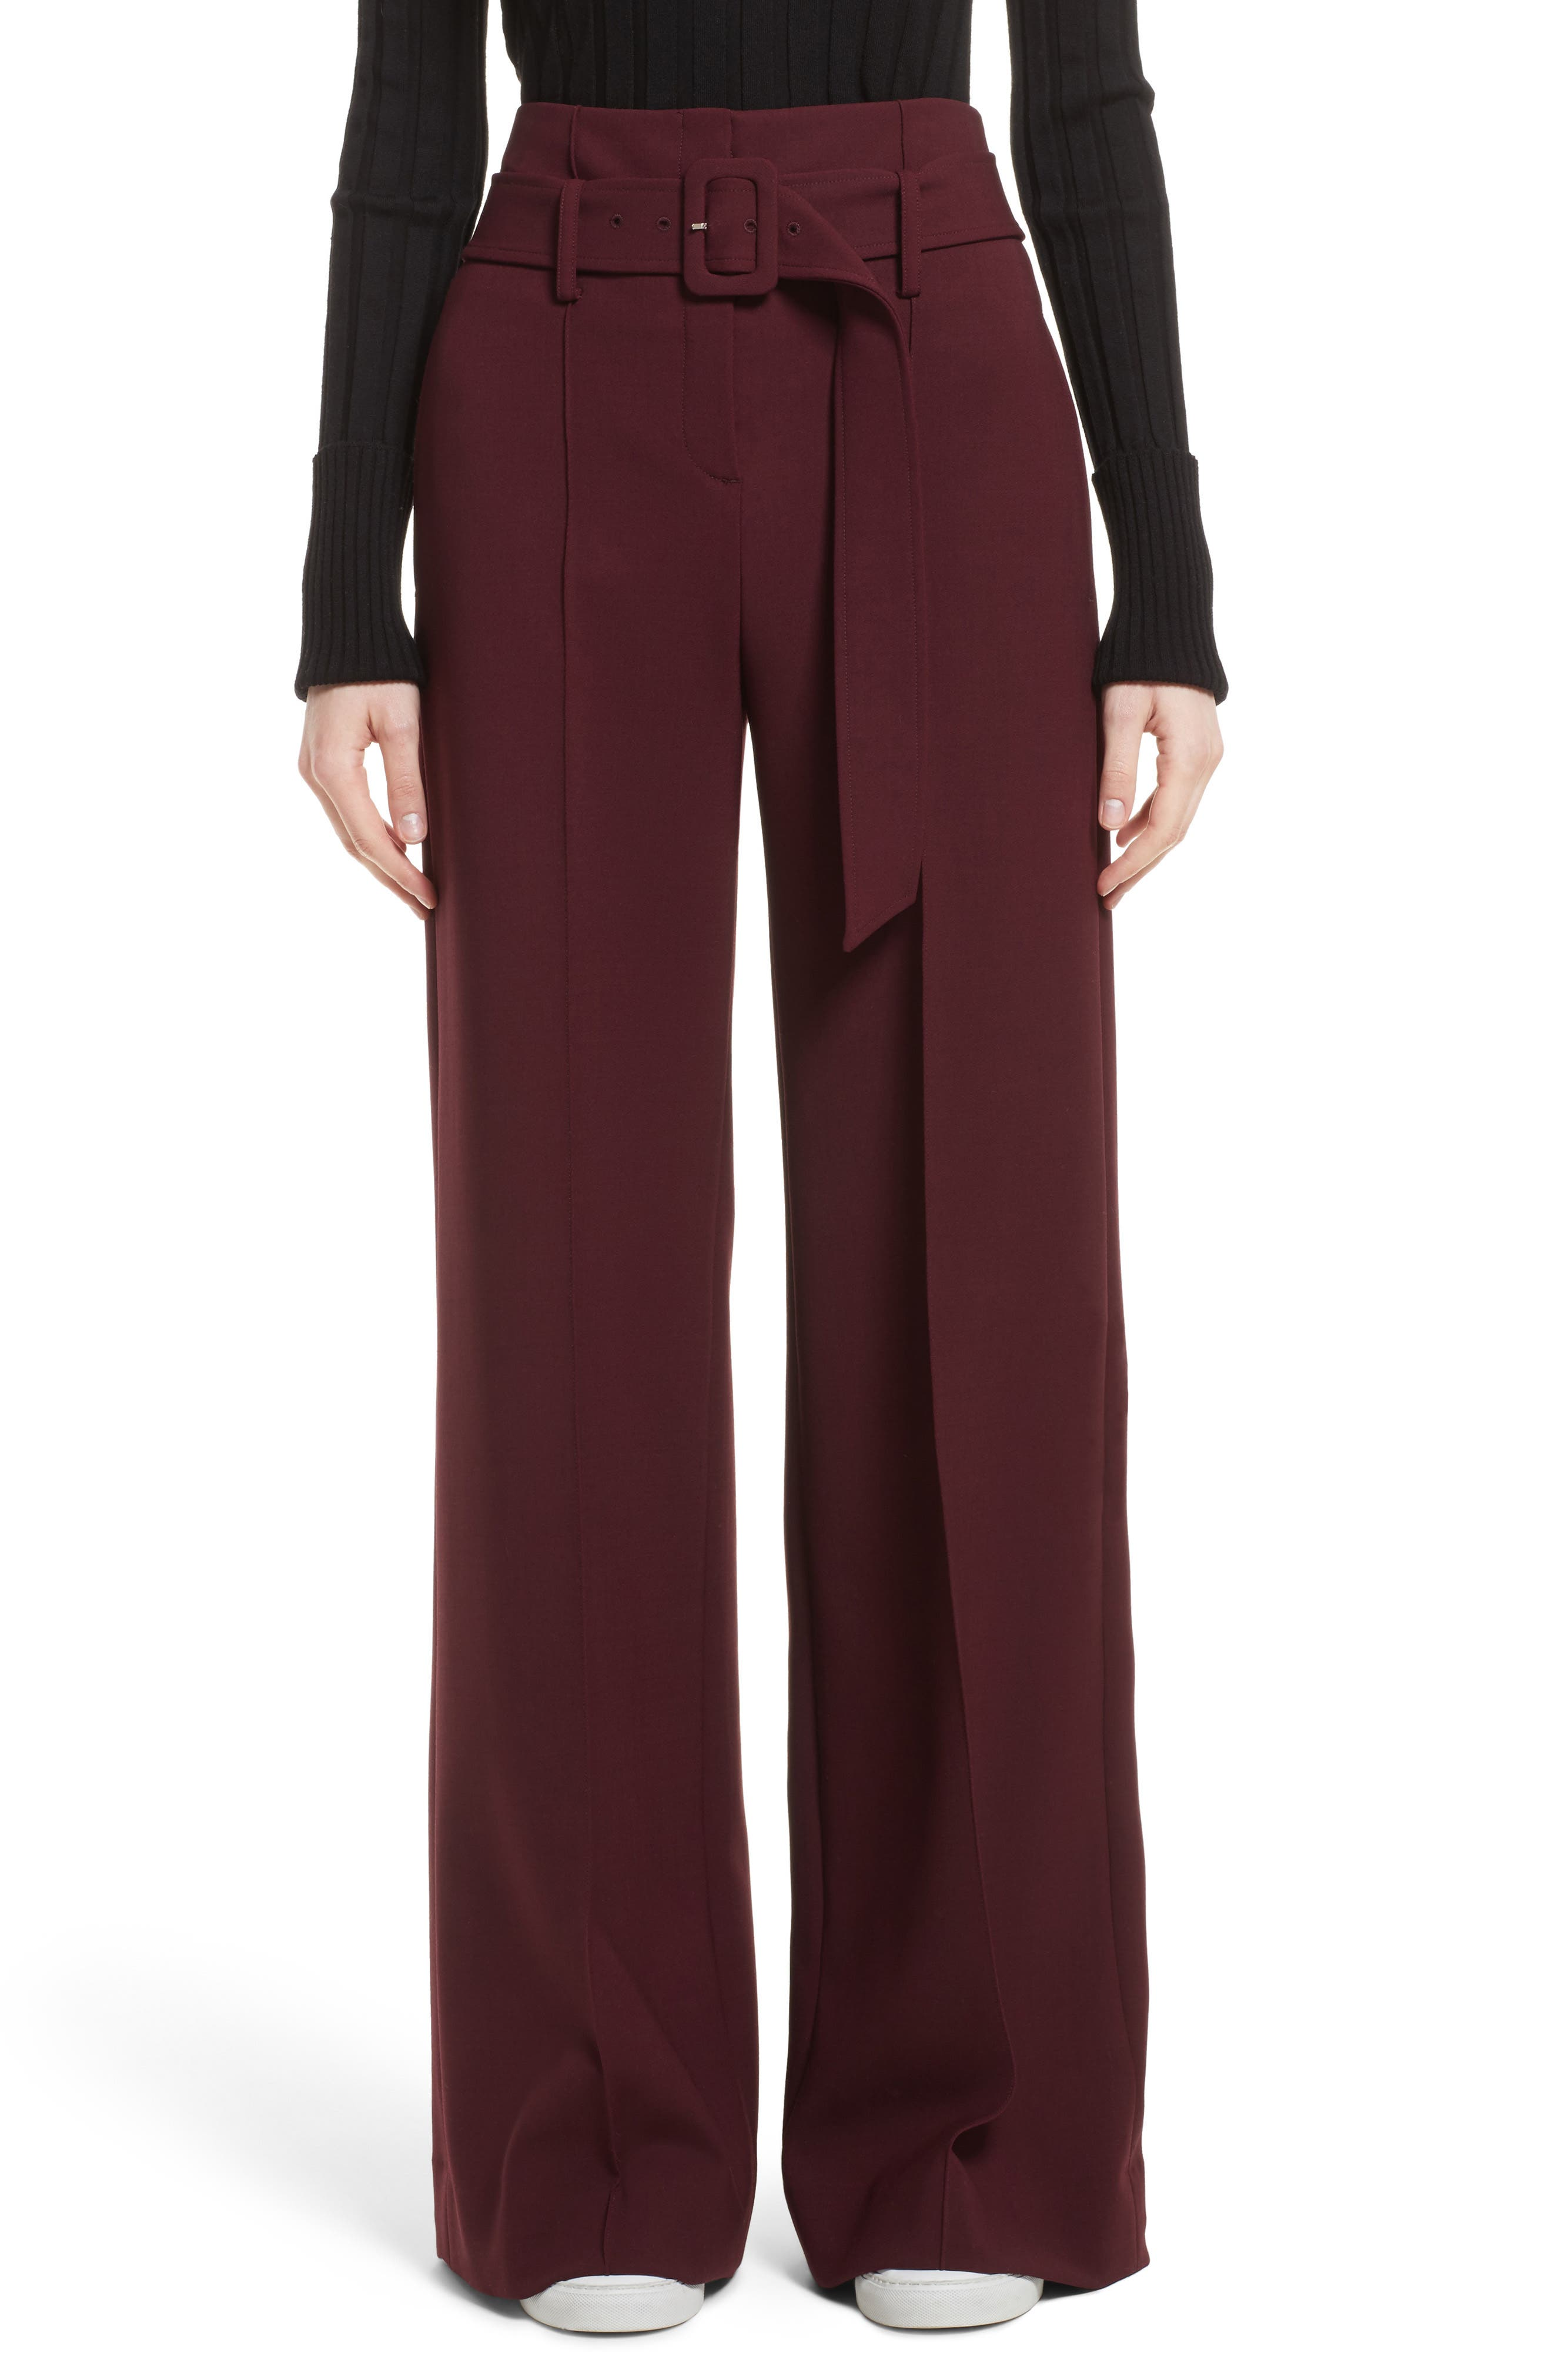 Camogie High Waist Belted Pants,                         Main,                         color, Dark Currant